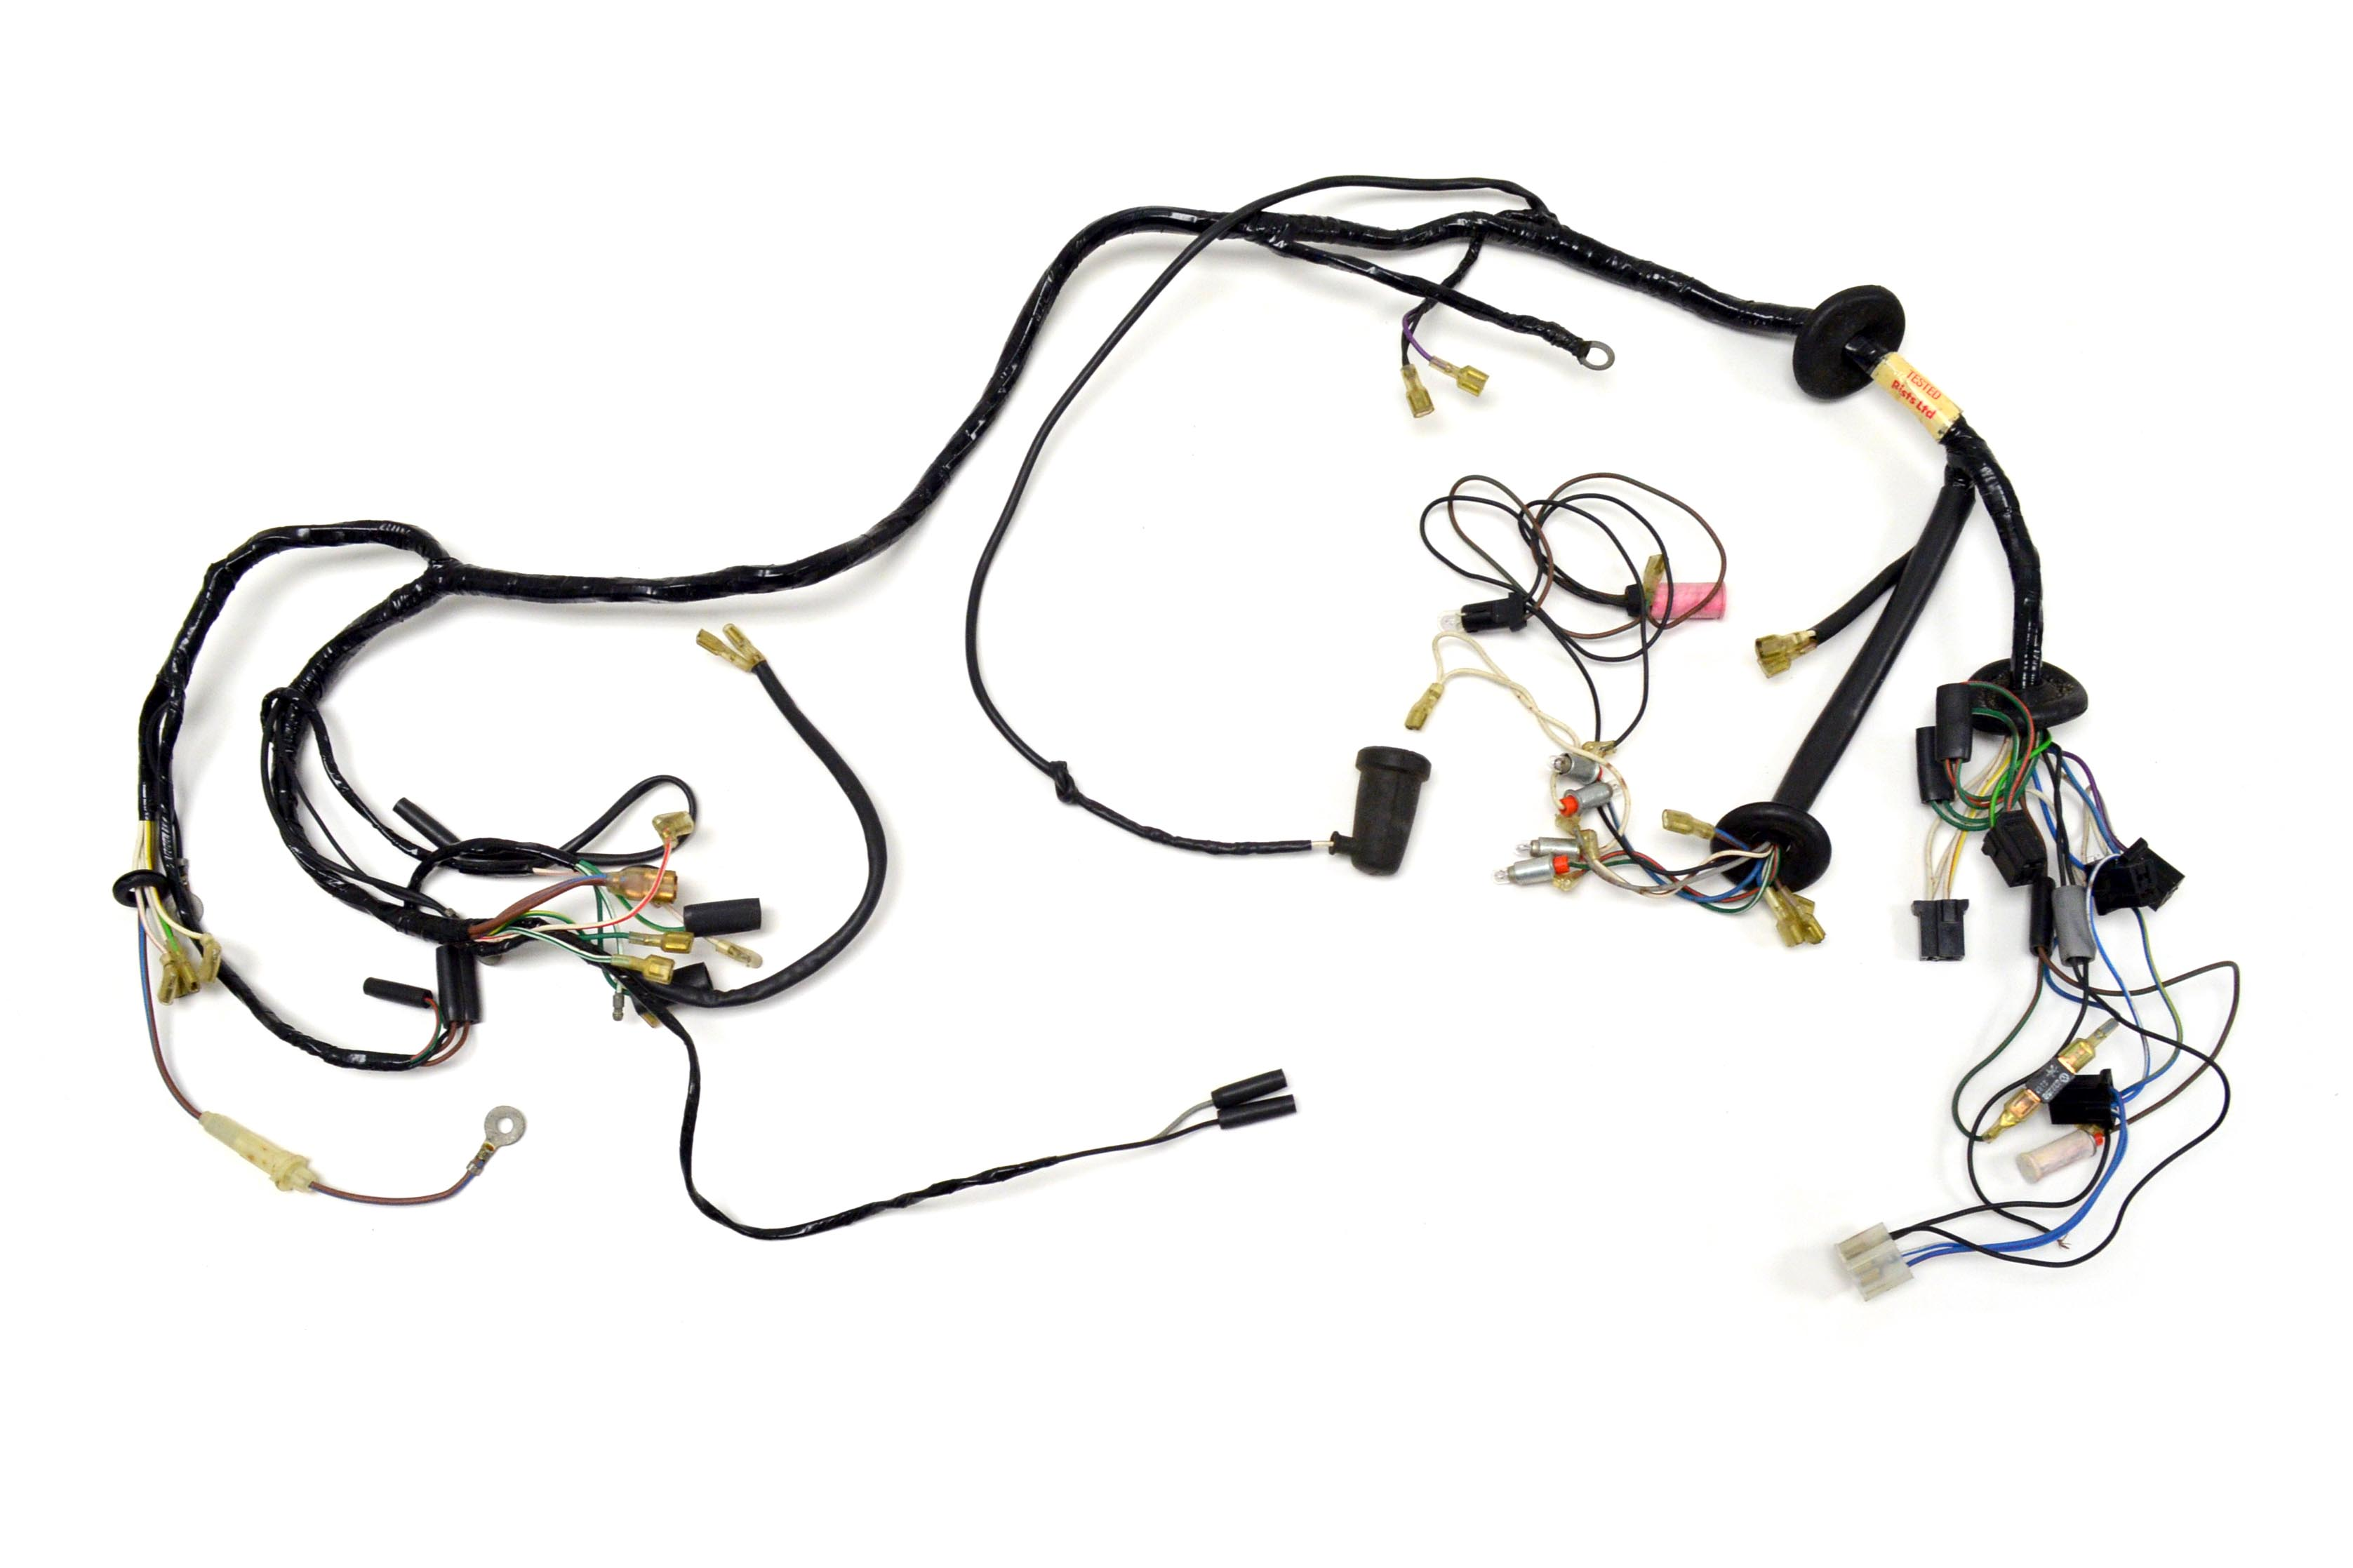 6 Volt Wiring Harness